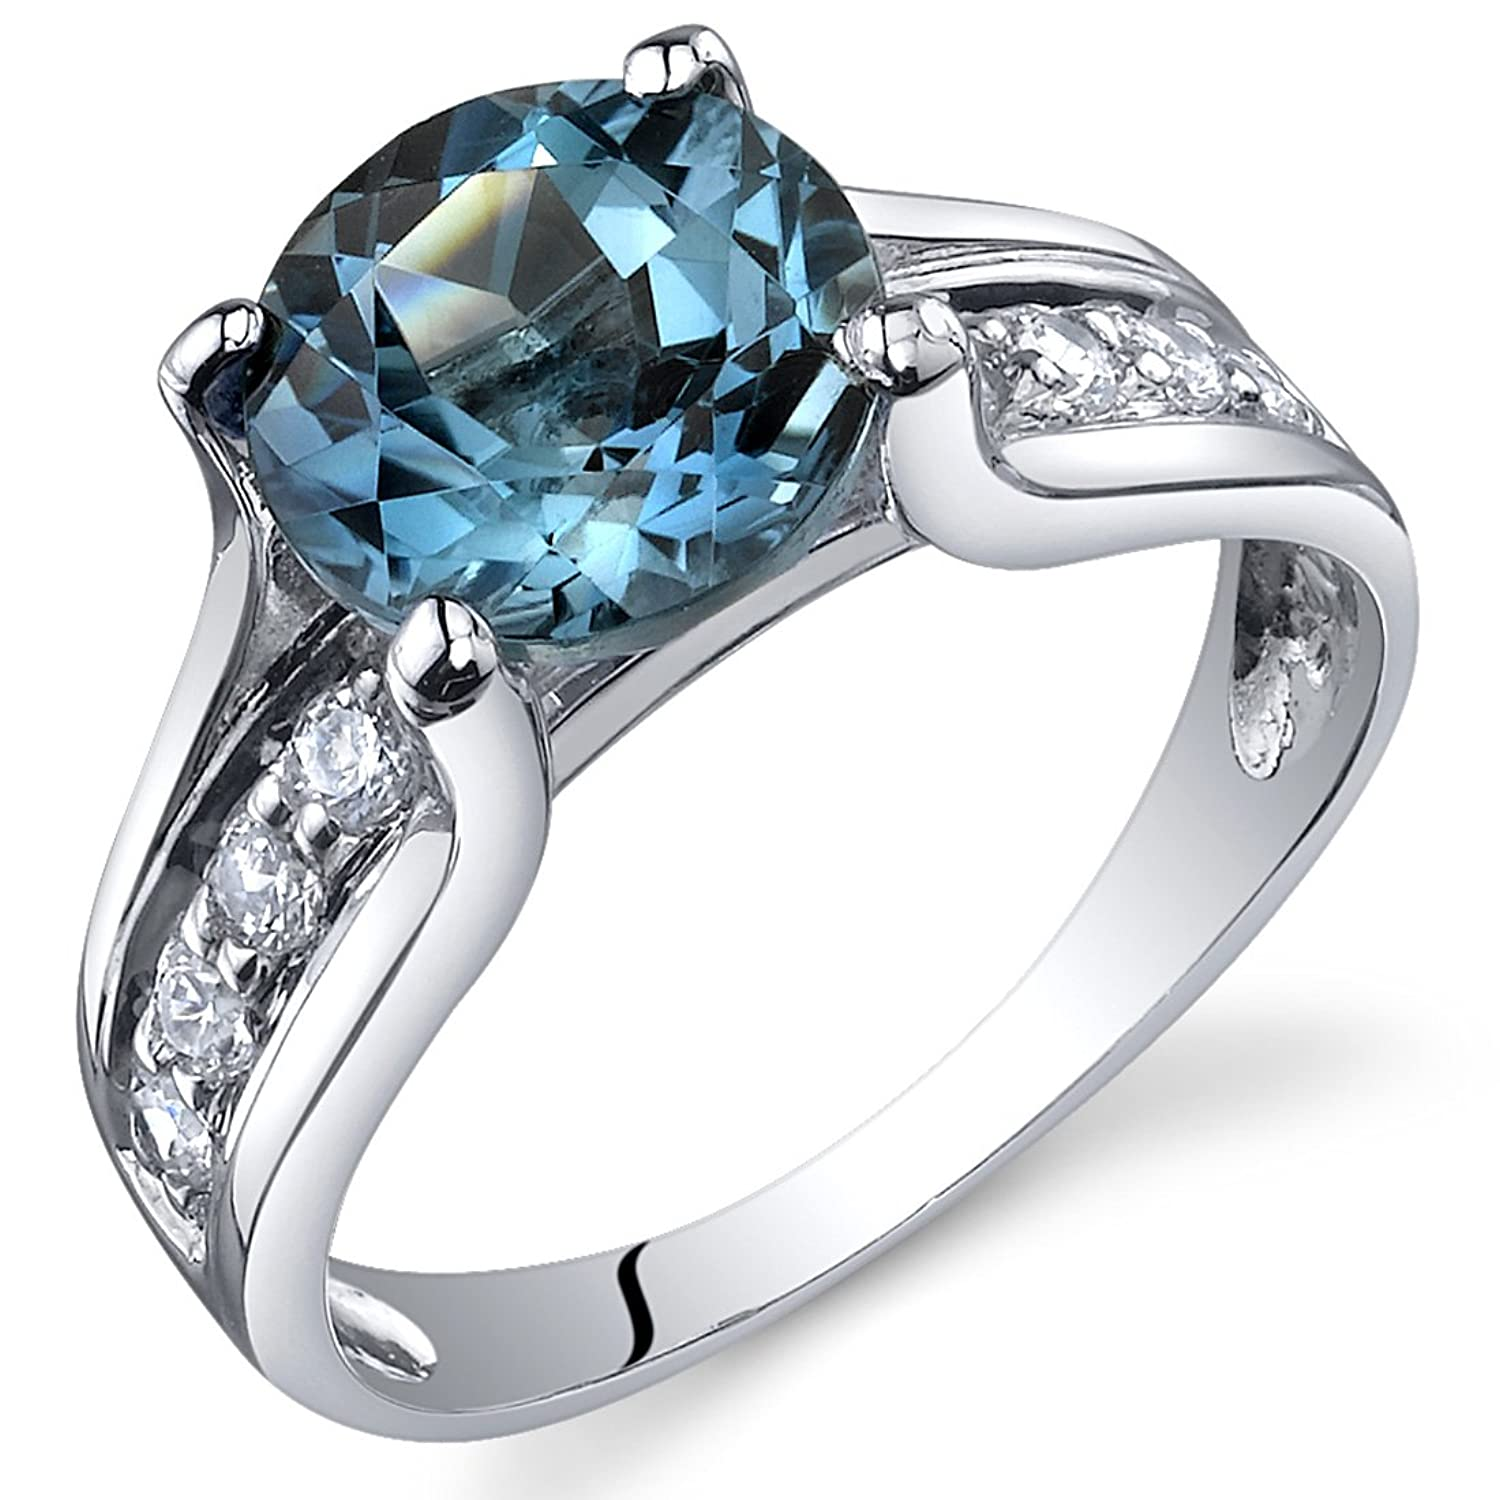 and engagement metals buyers a how iolite to guide blue of dark buy ring piece rings perfect jewelry